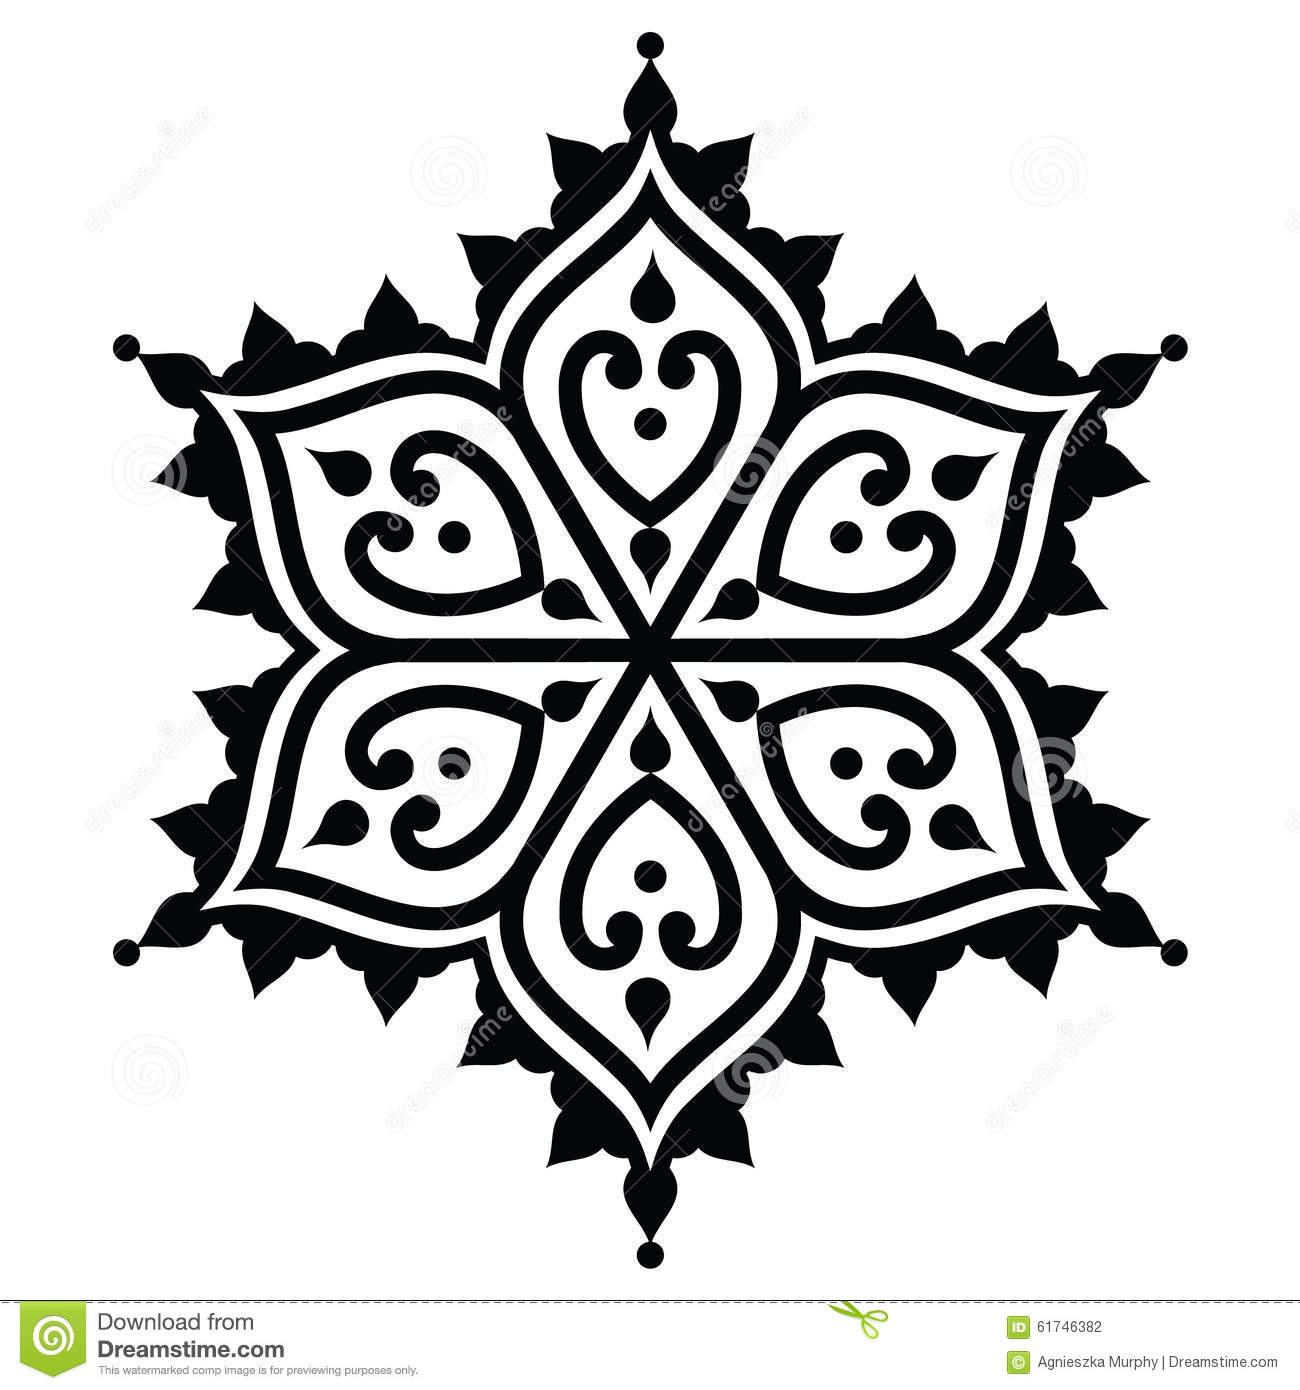 Daddy Yankee Talento De Barrio Logo Psd 469437 in addition Portfolio Cultured Biker together with Stock Illustration Islamic Star Pattern White Background Arabesque Image45020592 moreover 4638 Diptyque Logo Download together with Free Swirl Designs. on star vector graphics